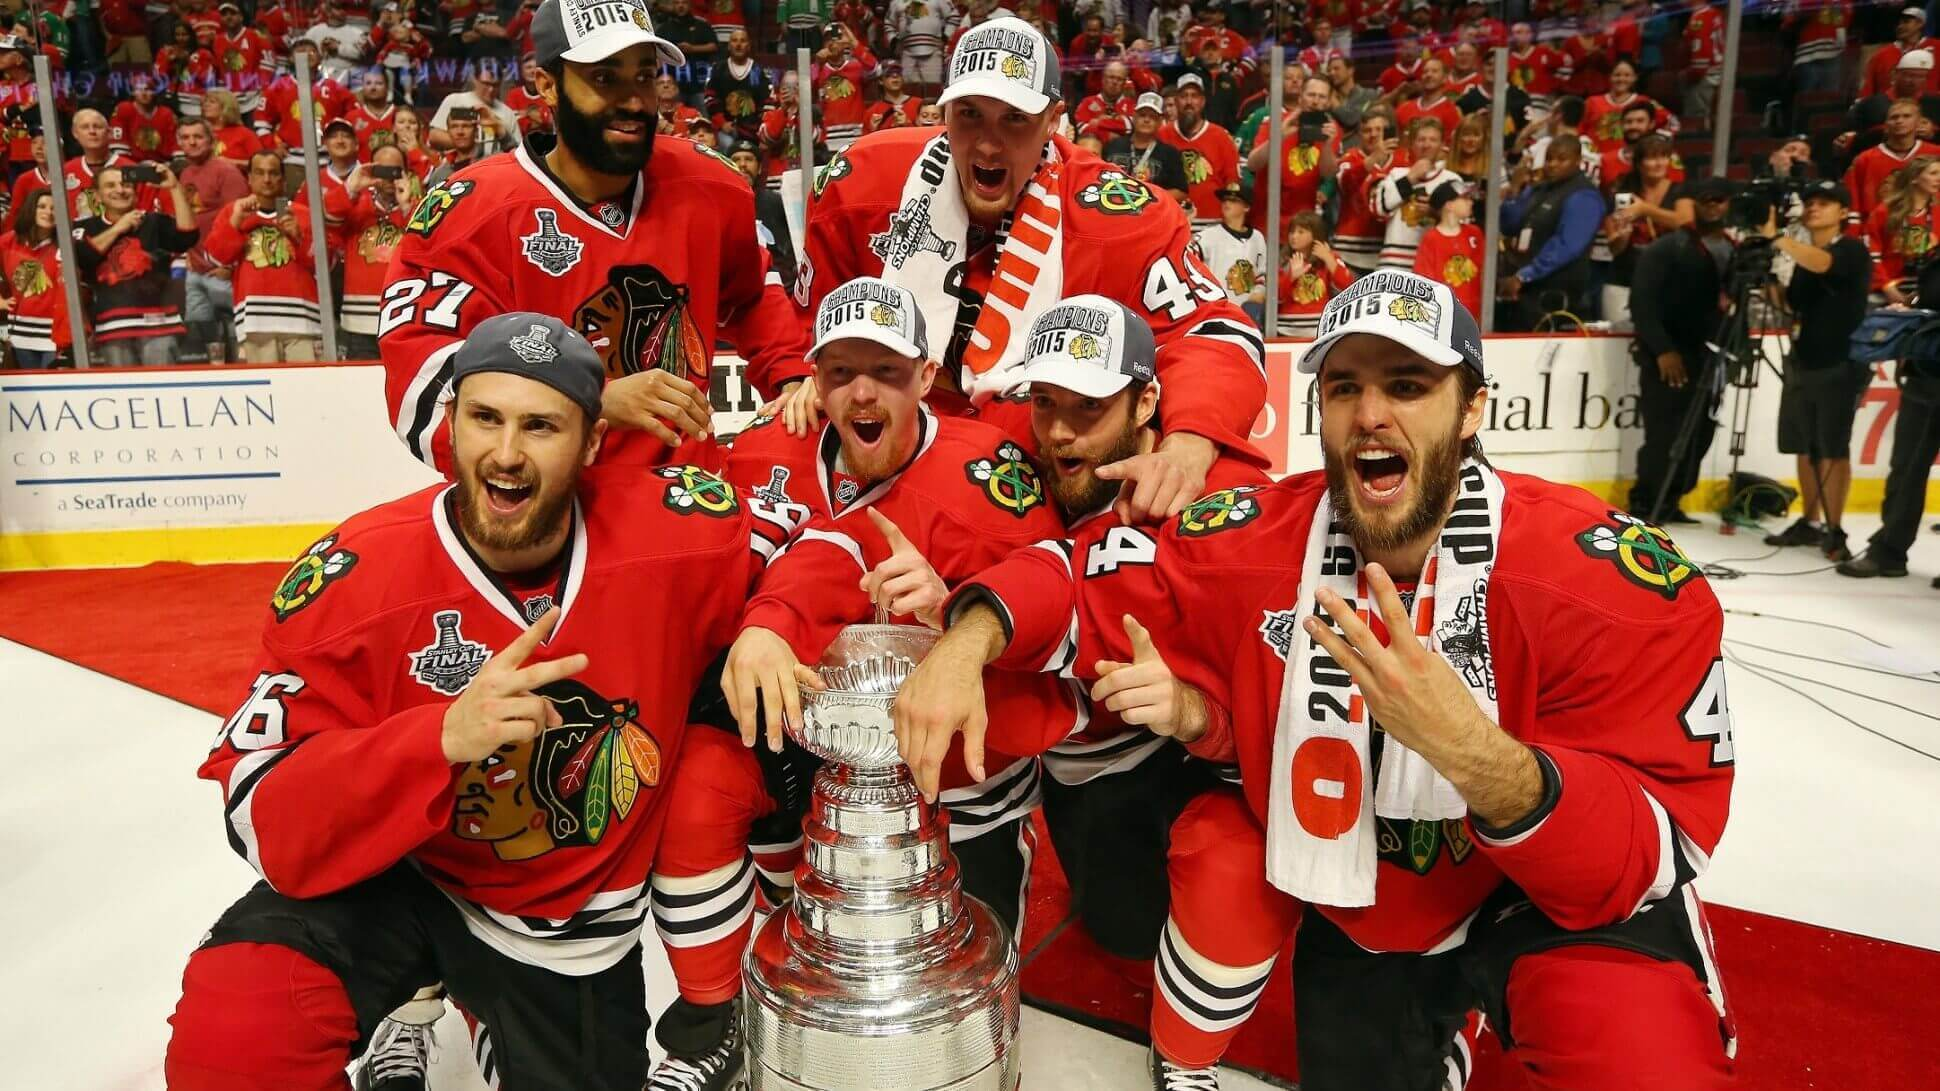 NHL Playoff Odds: Stanley Cup candidates Chicago Blackhawks